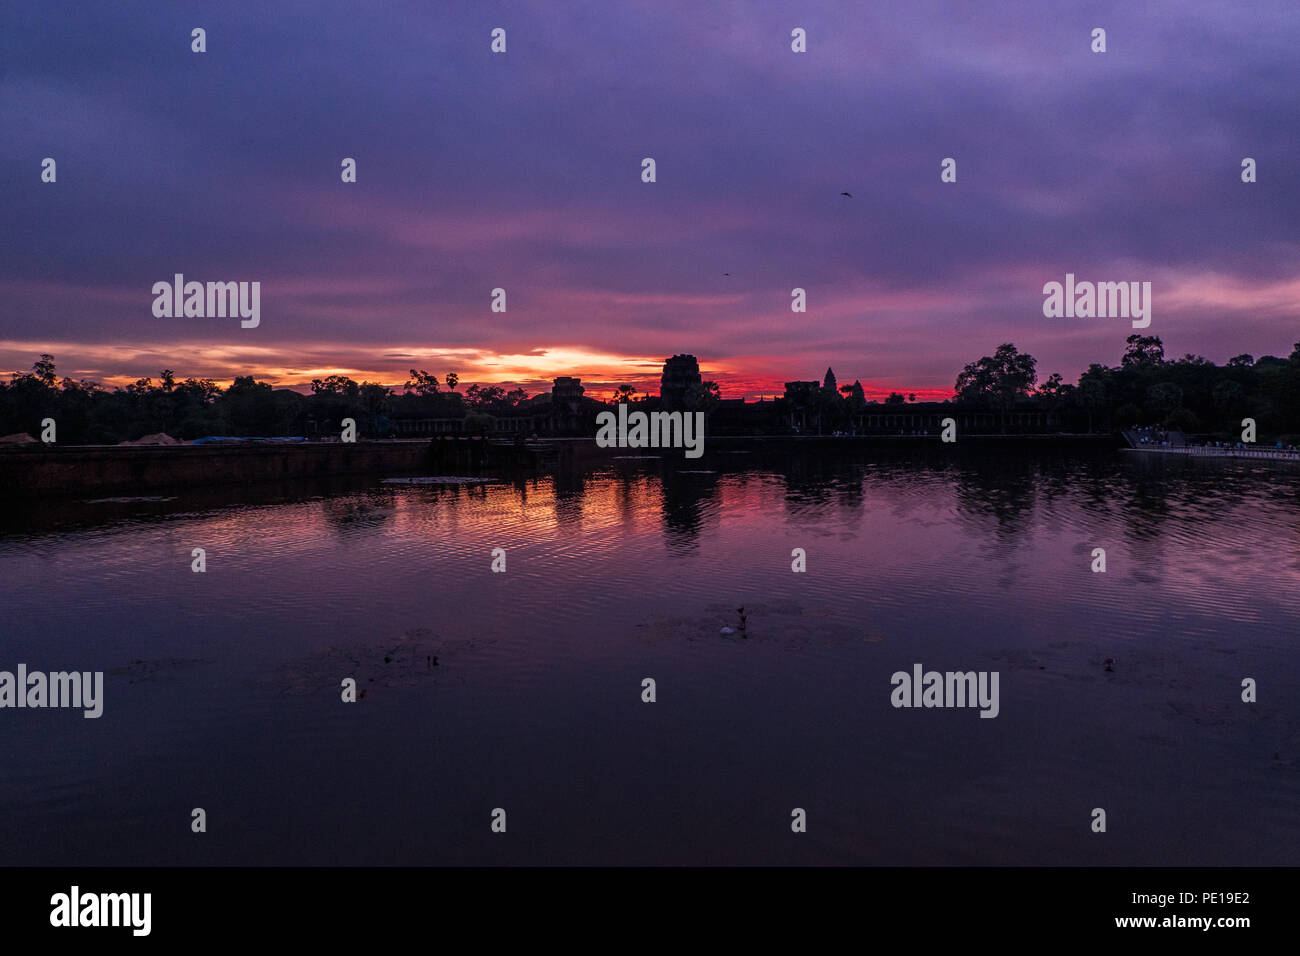 Sunrise over the moat surrounding the temple Angkor Wat - the largest religious monument in the world - near Siem Reap, Cambodia Stock Photo